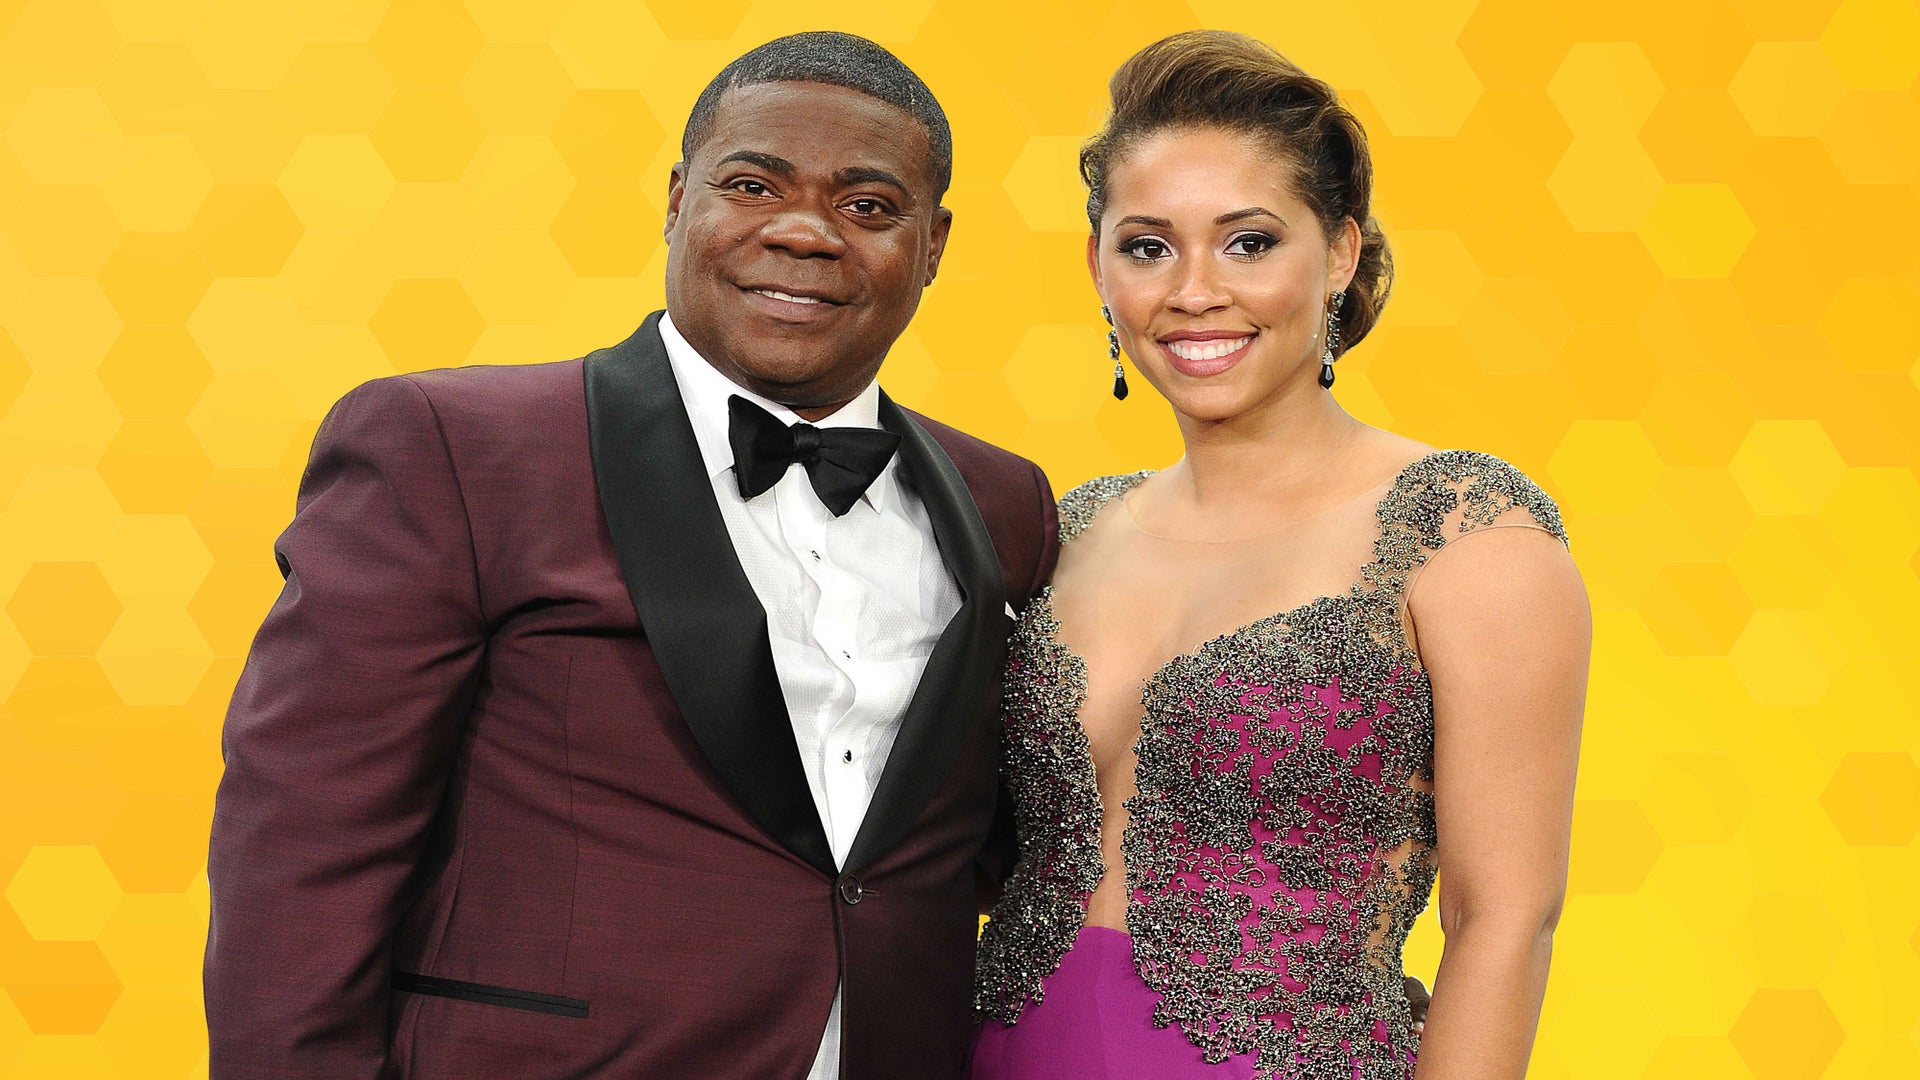 Tracy Morgan's Wife Megan Morgan On The Call That Changed Her Life and Healing With Love After Tragedy